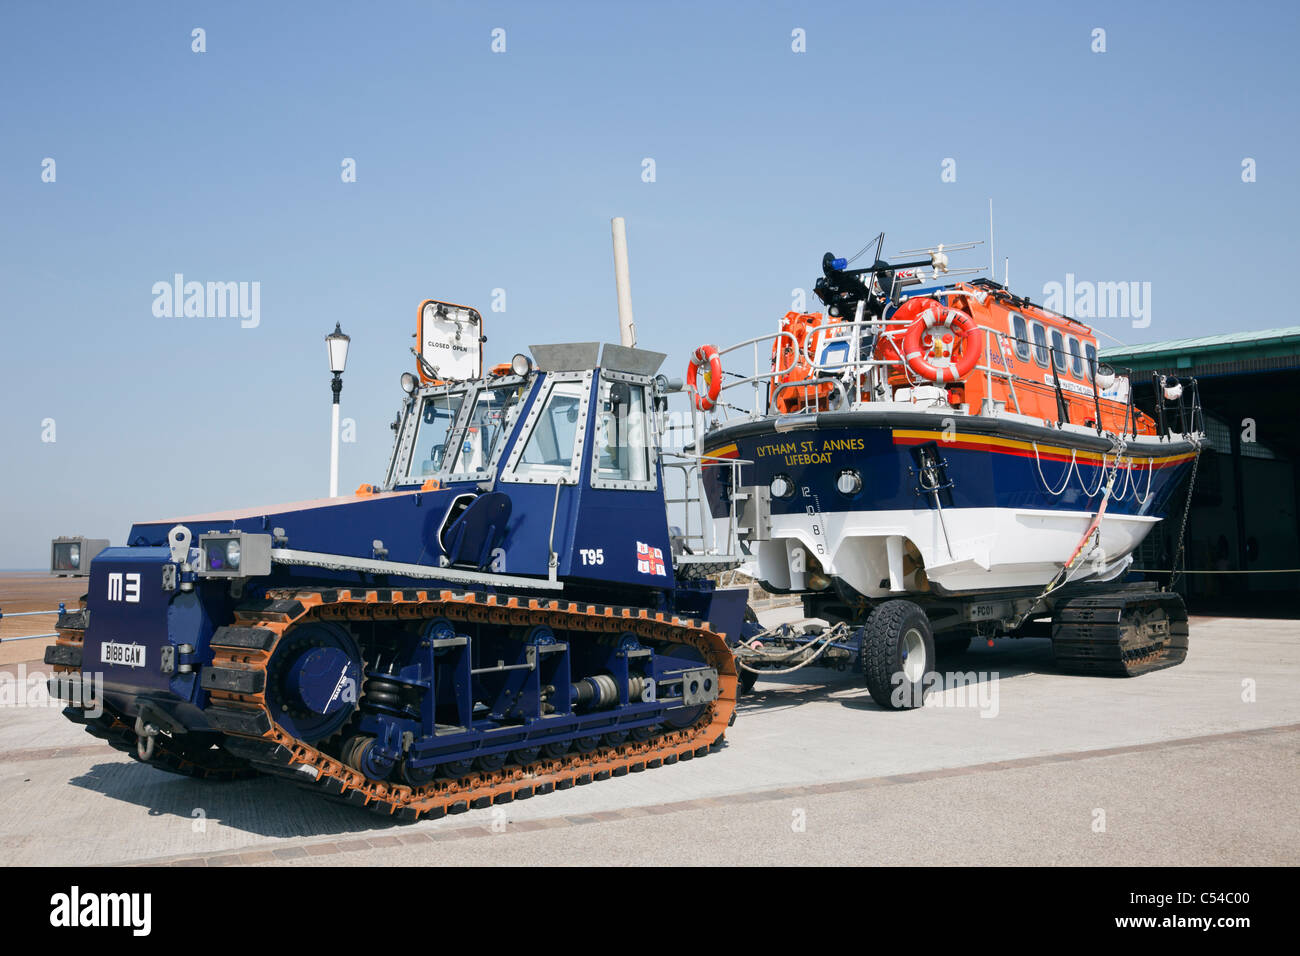 Lytham St Annes, Lancashire, England, UK. Lifeboat on wheeled trailer with tractor towing for crossing beach on - Stock Image